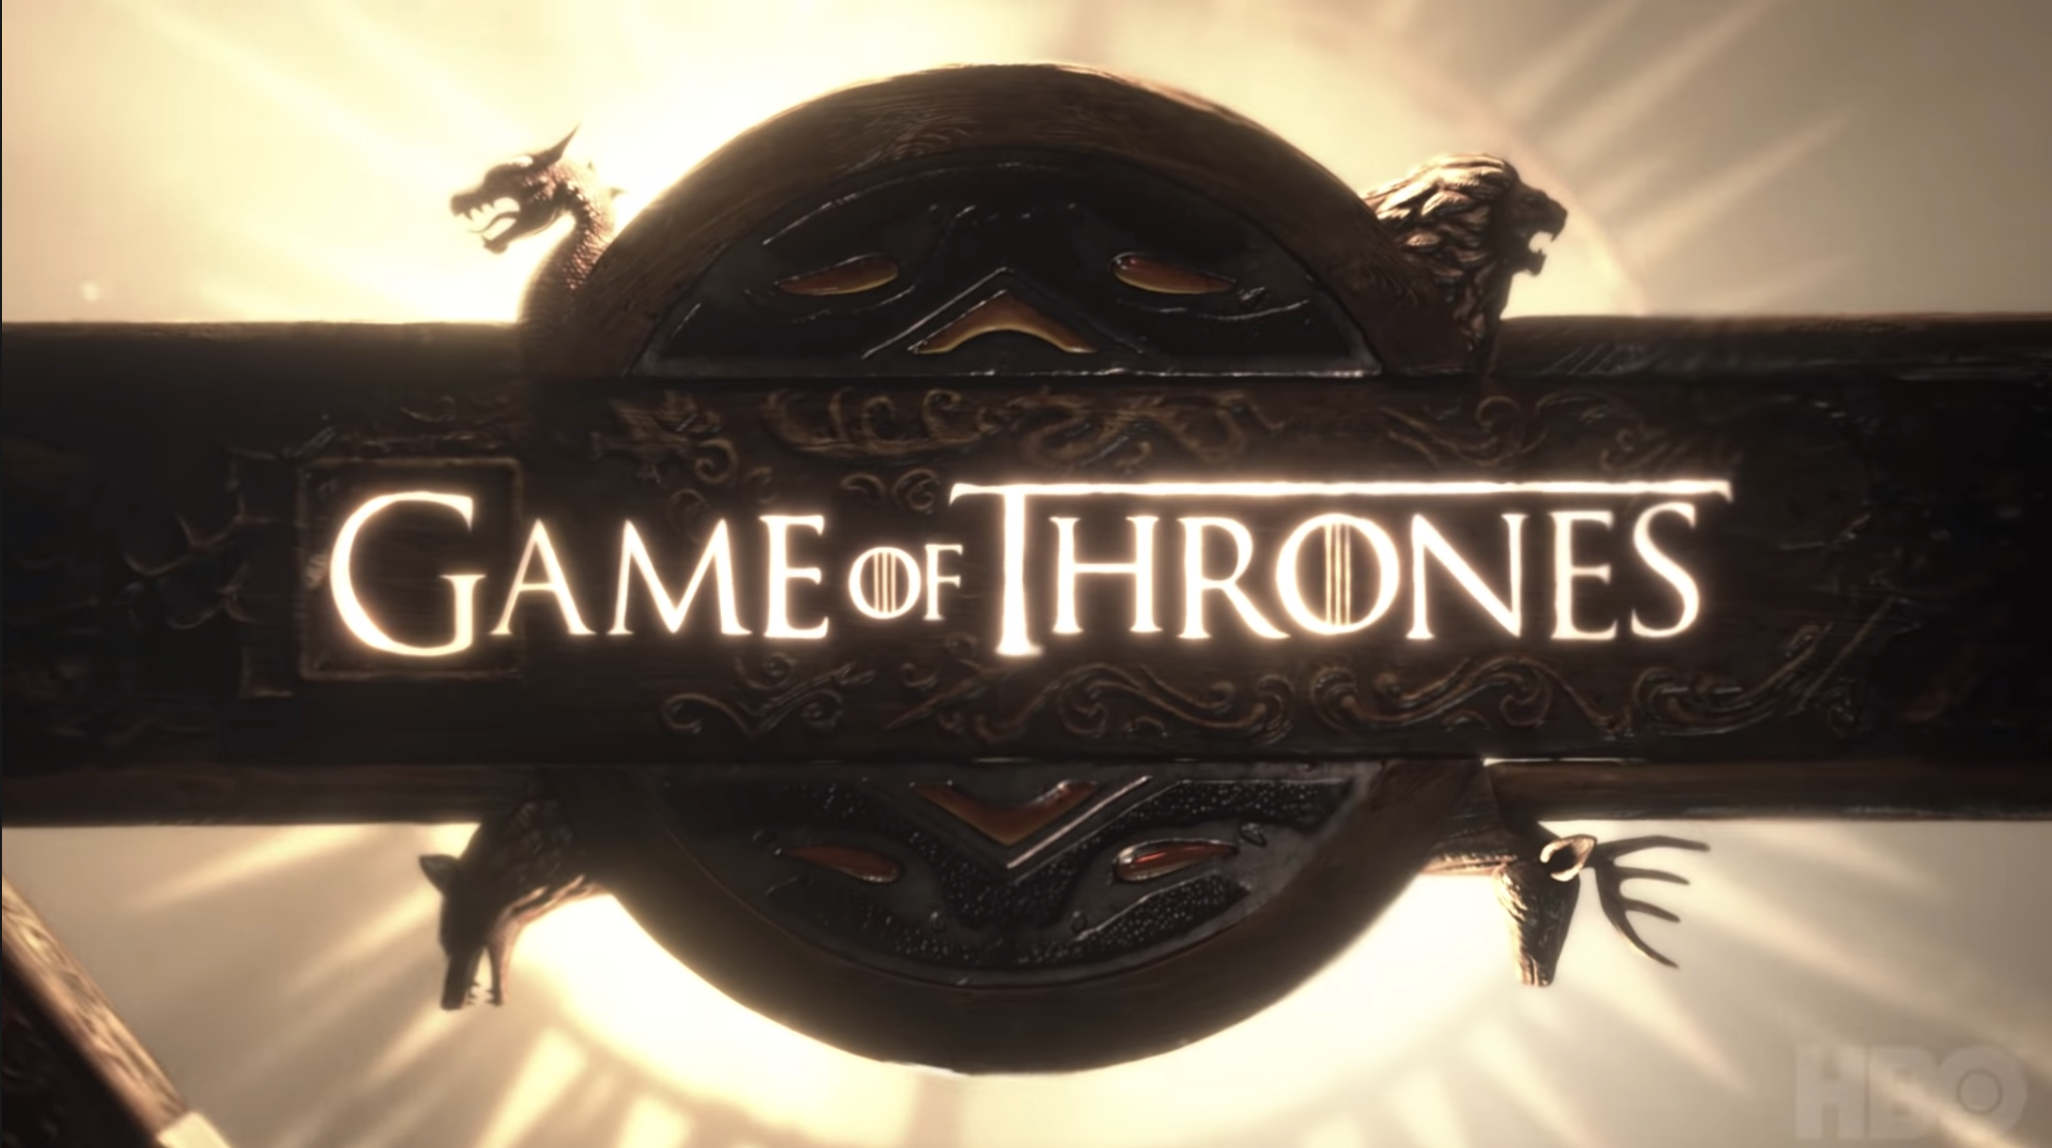 """GoT"" title card — which is the title of the show branded into an iron circle."